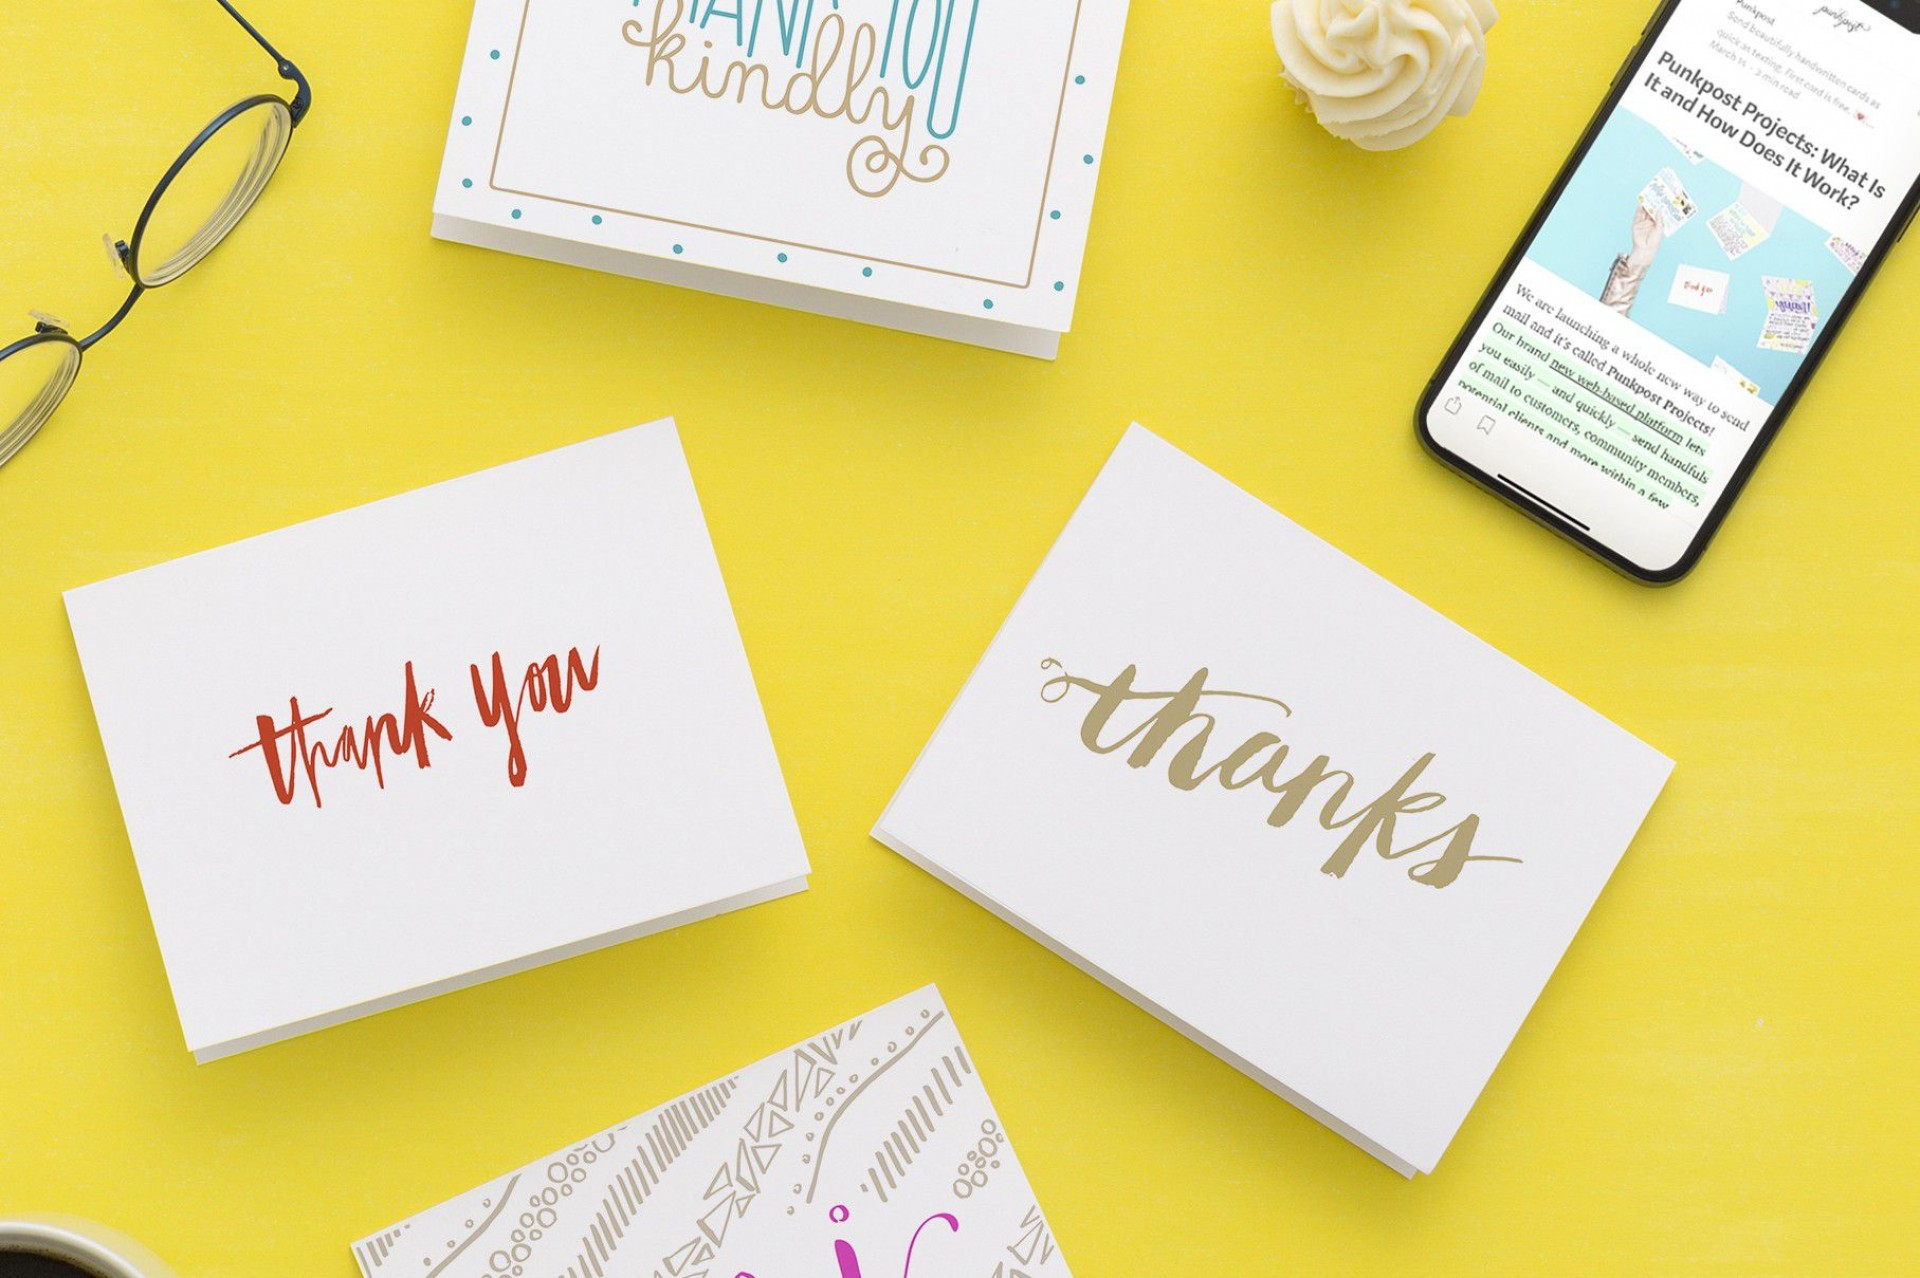 000 Fascinating Handwritten Thank You Note After Interview Template Idea 1920